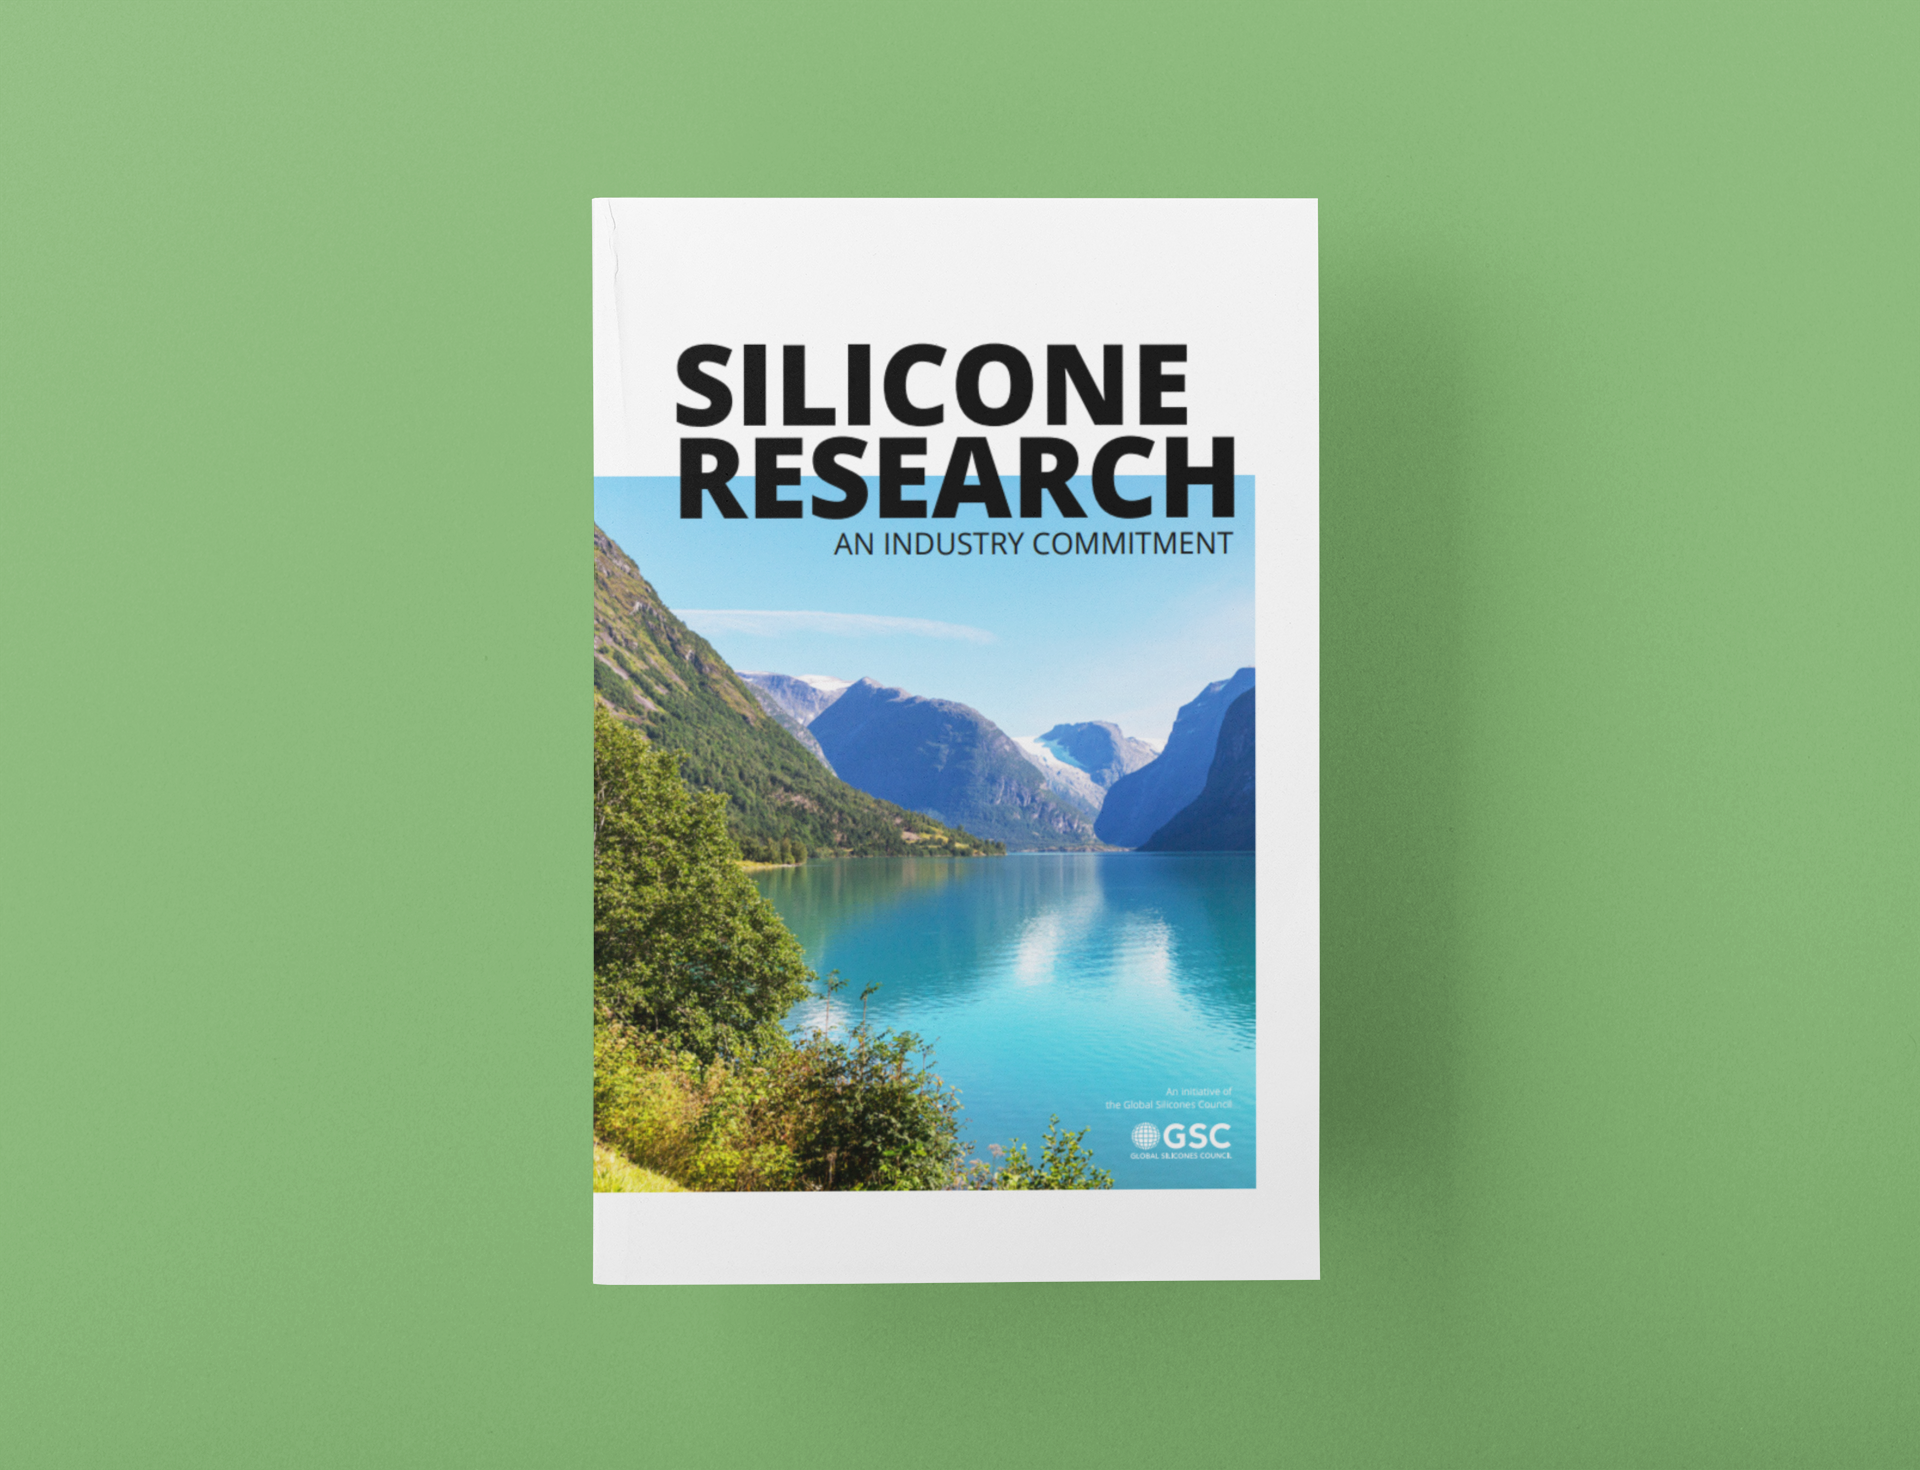 Silicone Industry Research Commitment